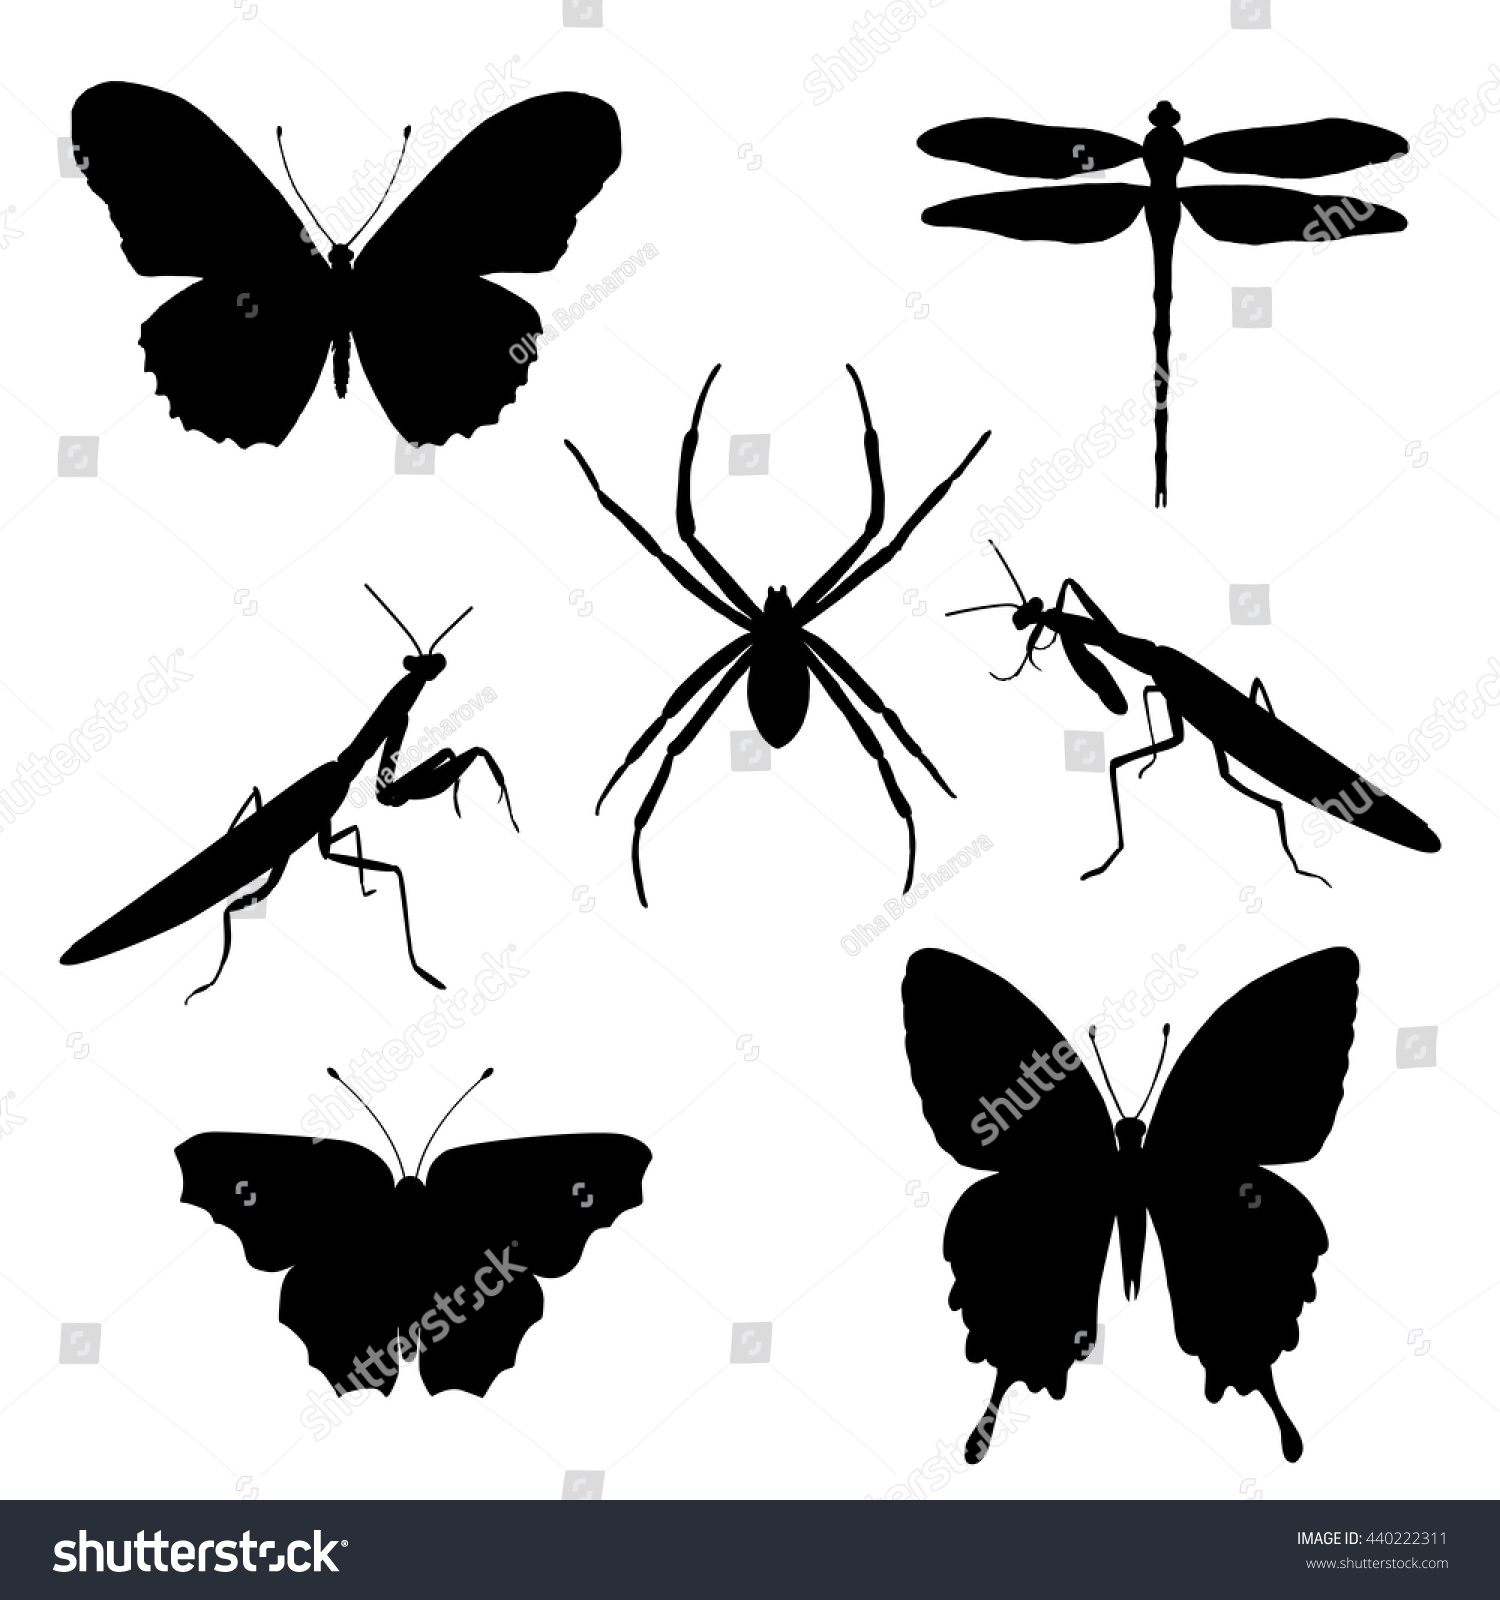 Vector set of silhouettes of insects butterflies spider mantises dragonfly Insect silhouette